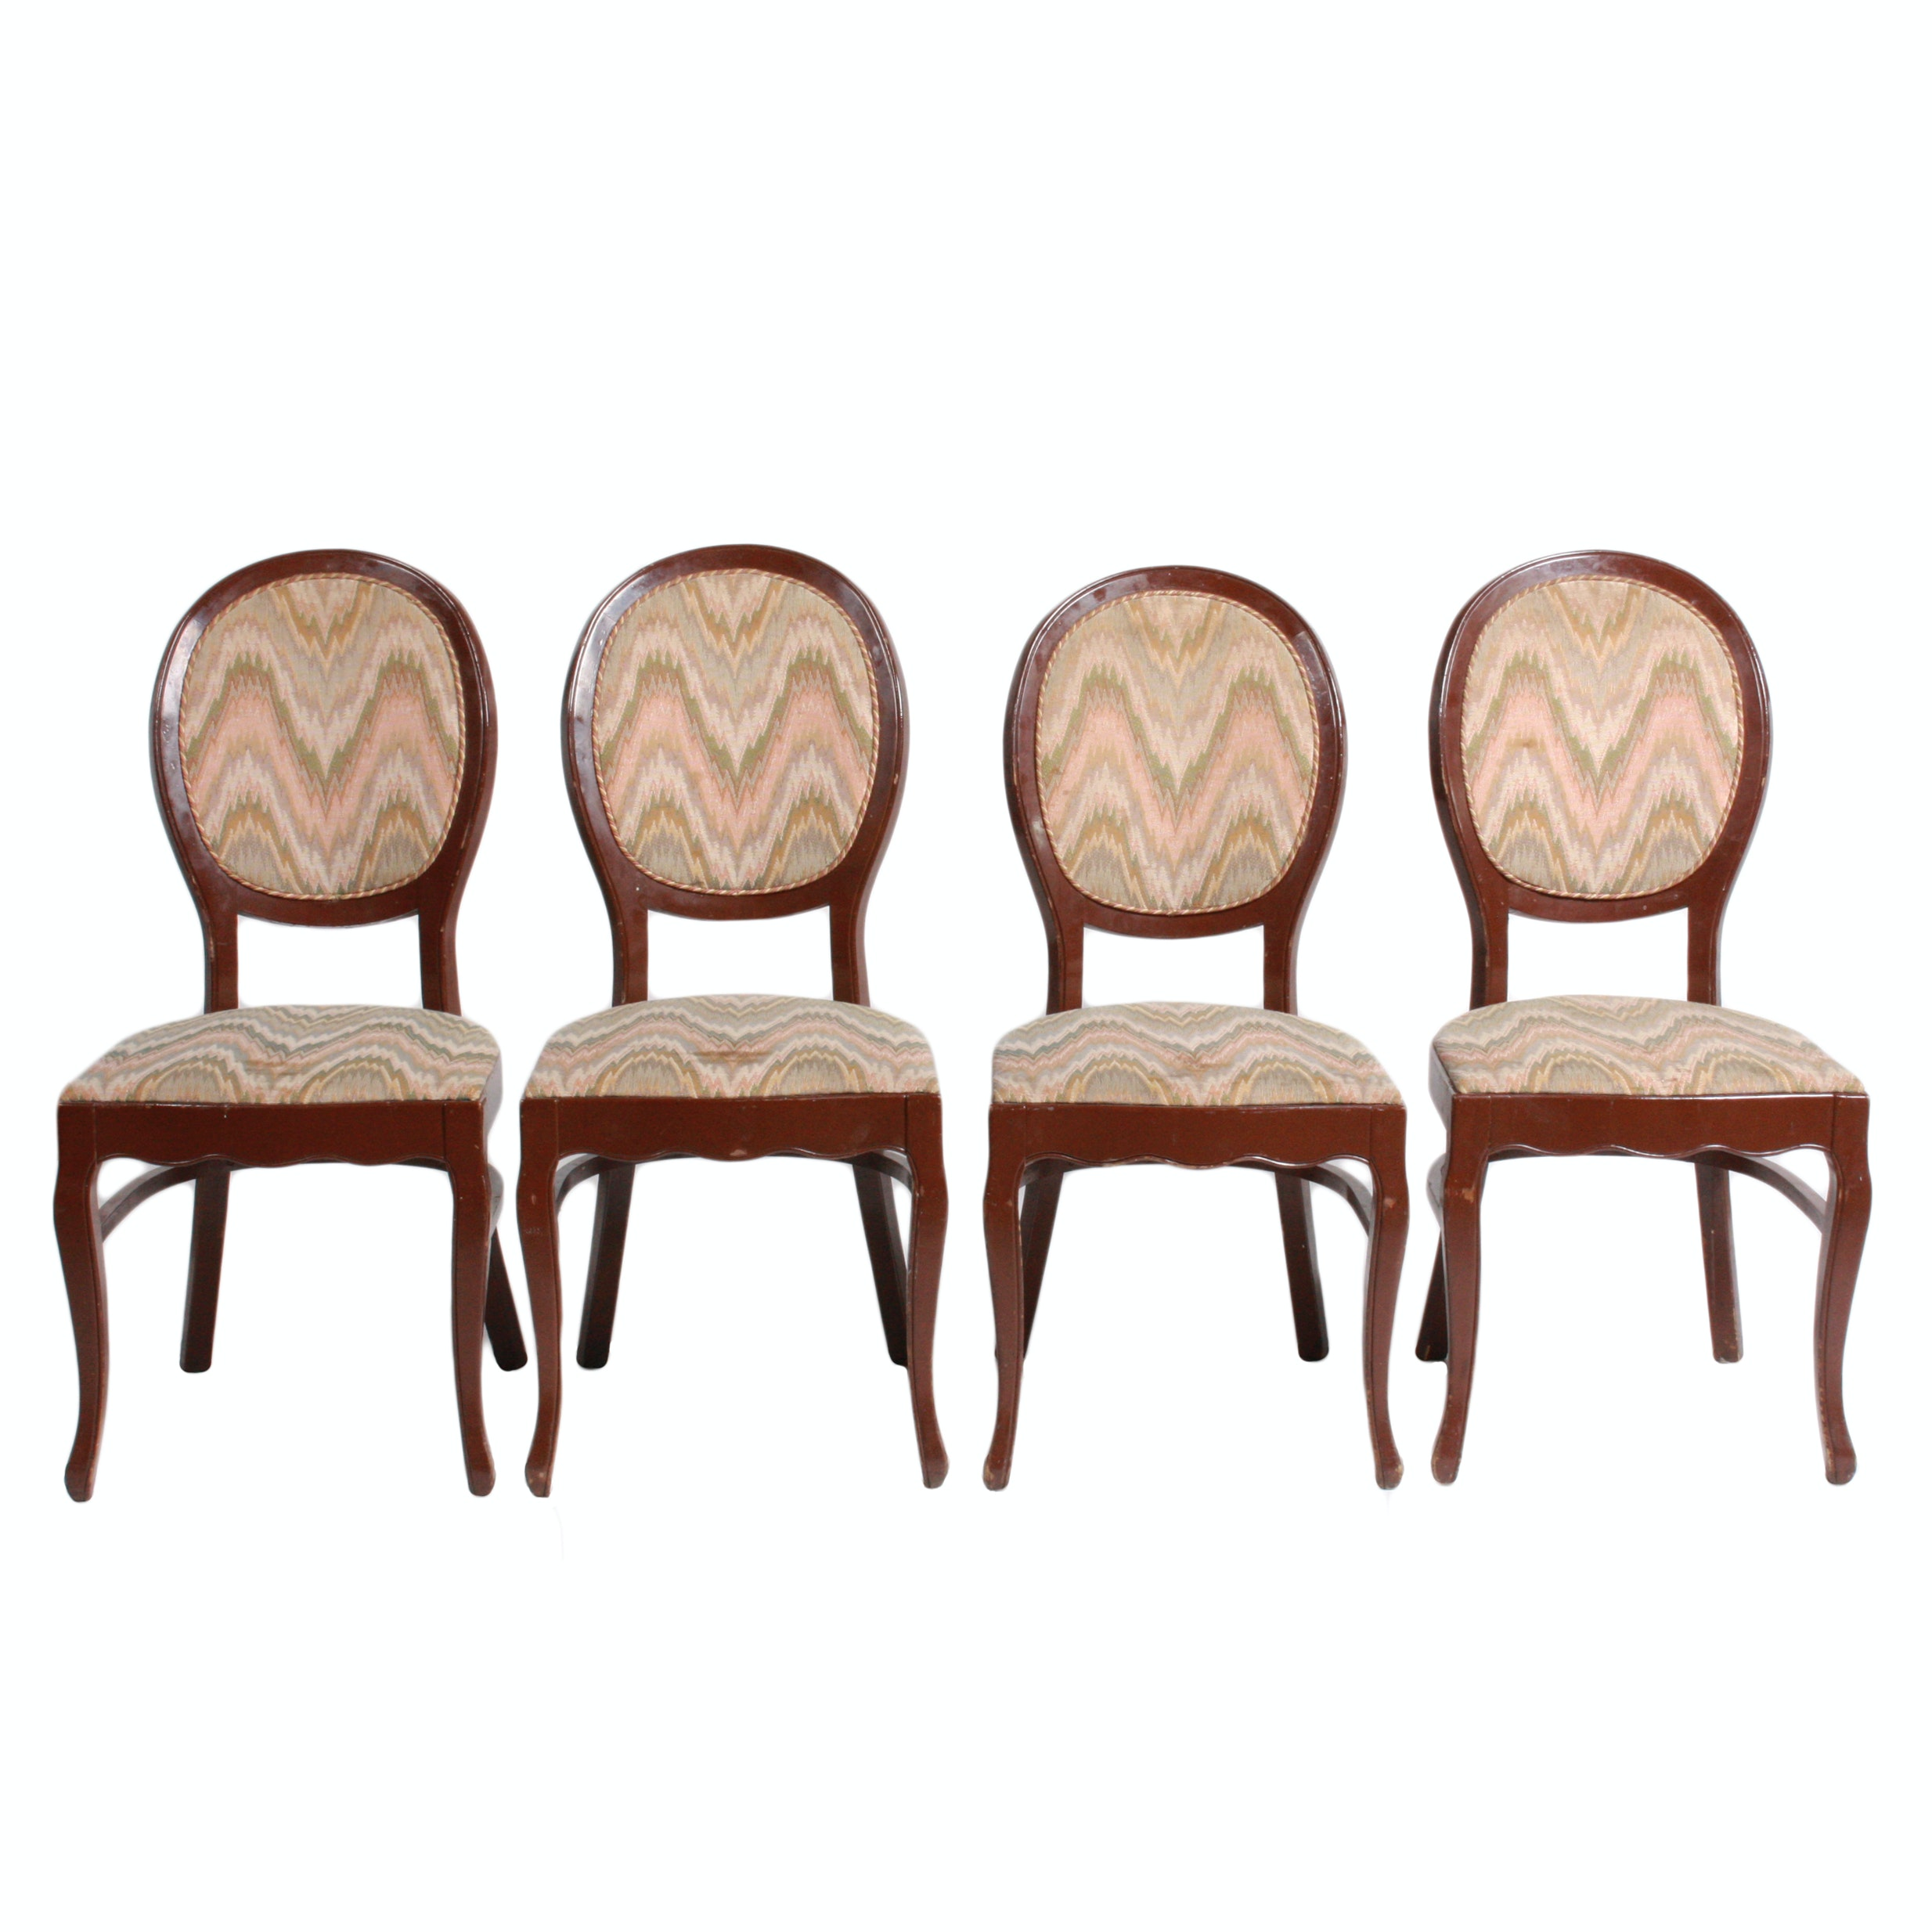 Set of French Style Dining Chairs